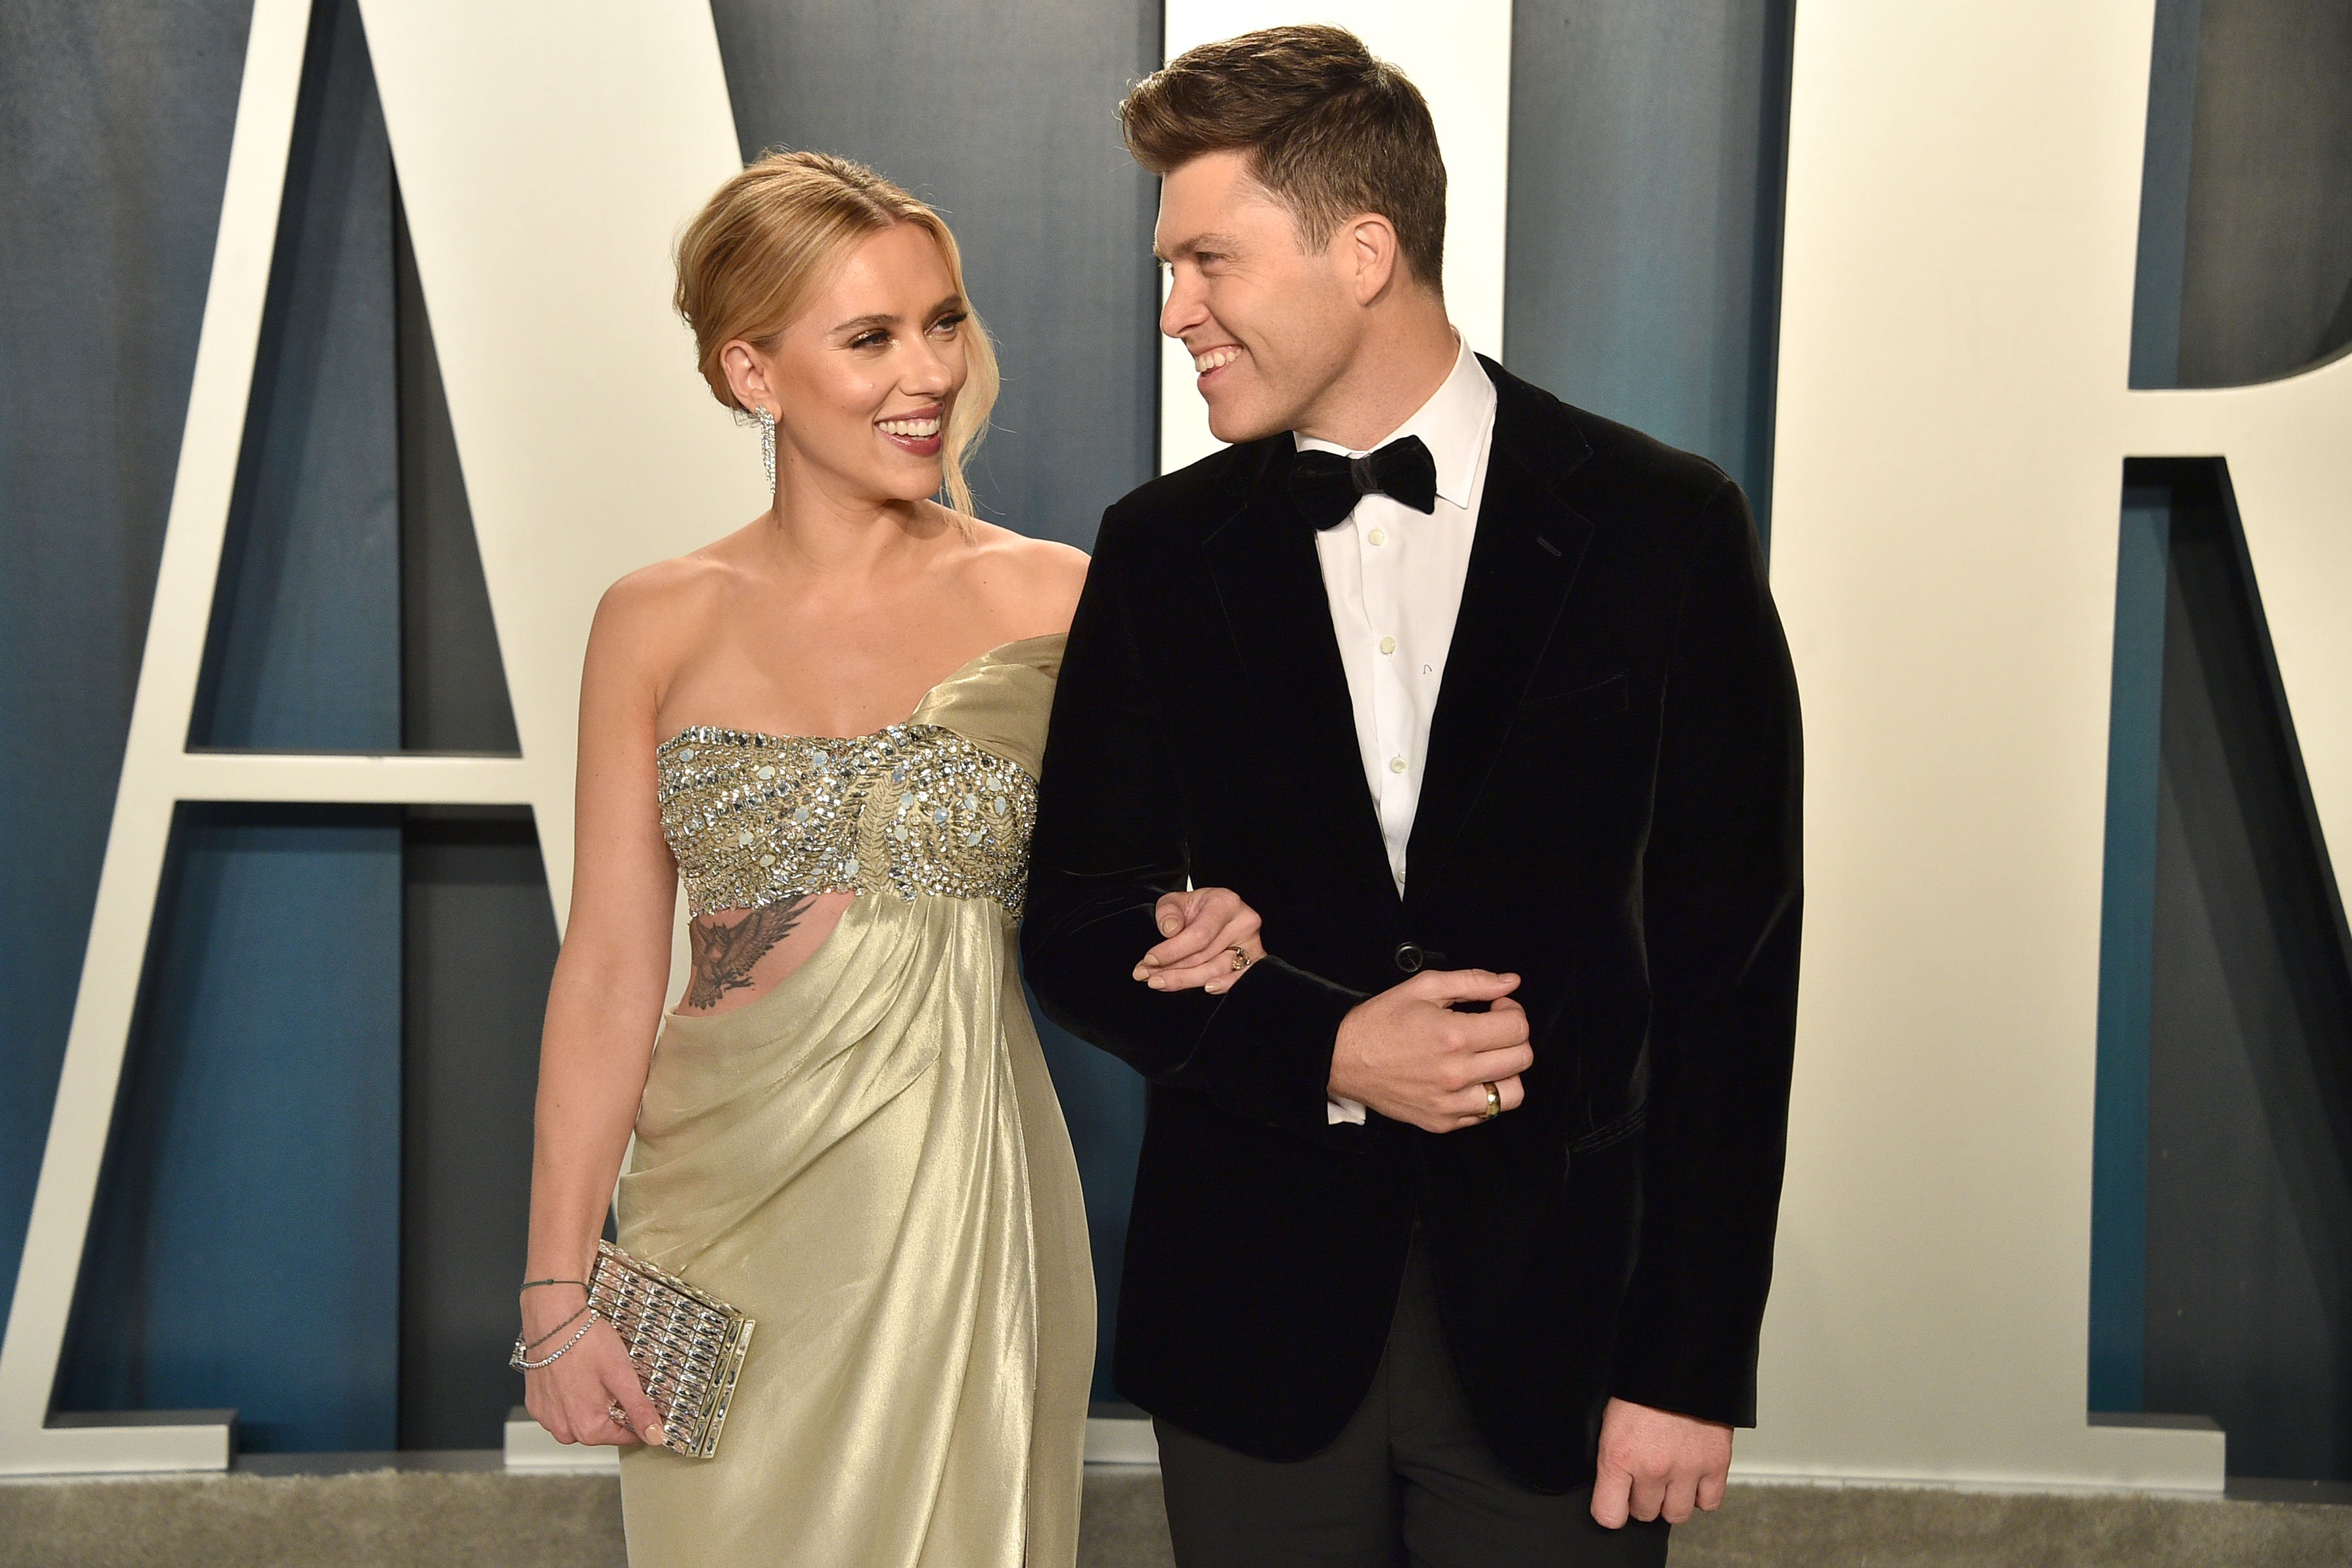 Scarlett Johansson and Colin Jost attend the 2020 Vanity Fair Oscar Party at Wallis Annenberg Center for the Performing Arts on February 09, 2020 in Beverly Hills, California | Photo: Getty Images